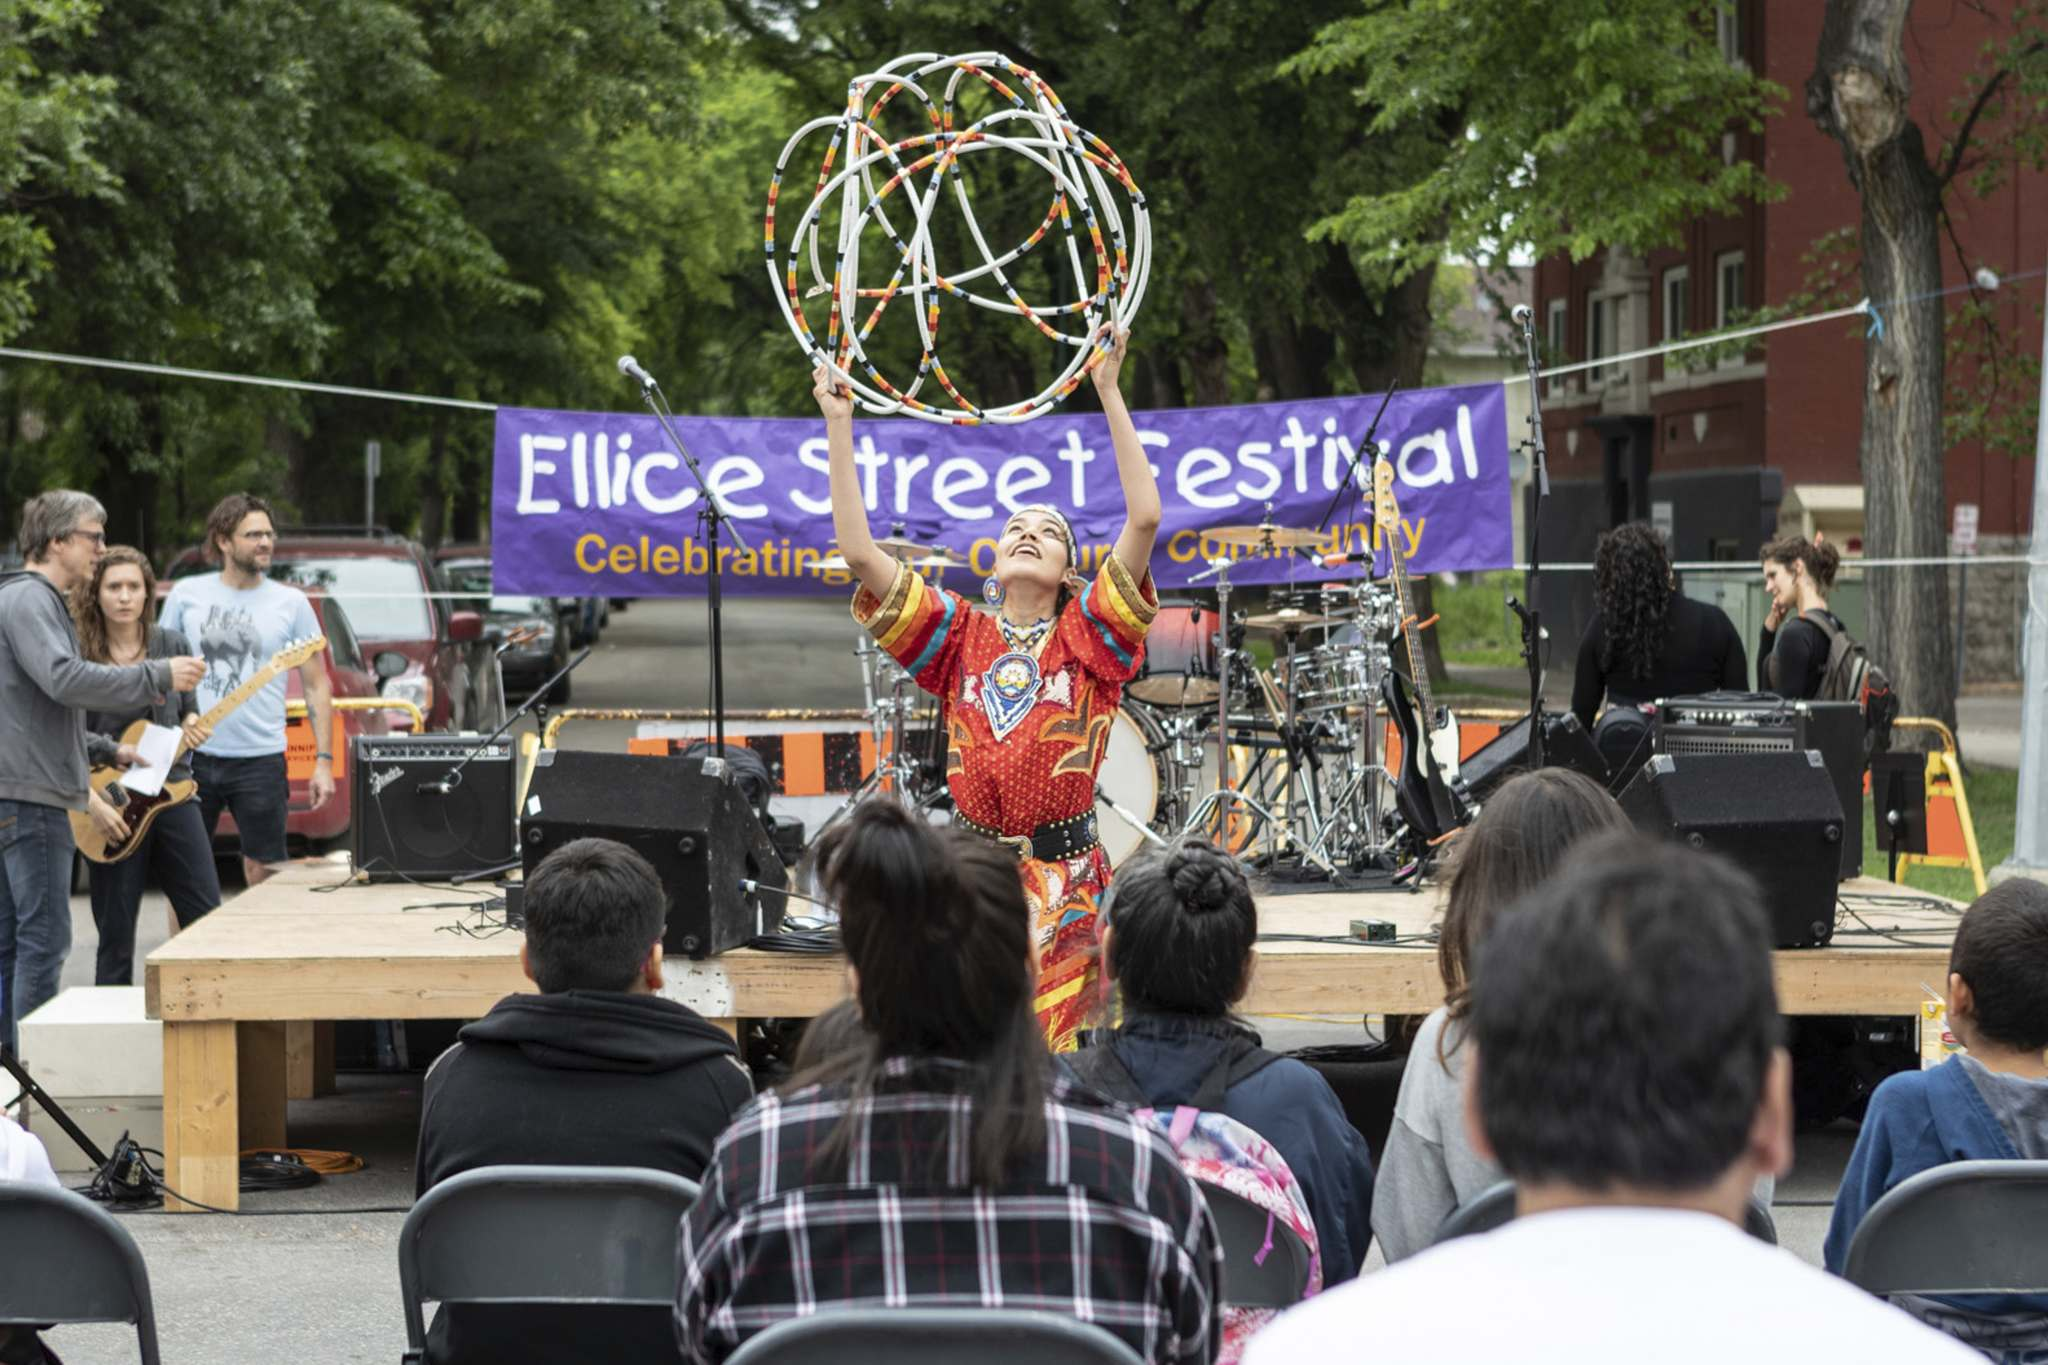 Matt Duboff</p><p>The Ellice Street Festival will feature a diverse musical lineup and a hoop dance performance.</p>